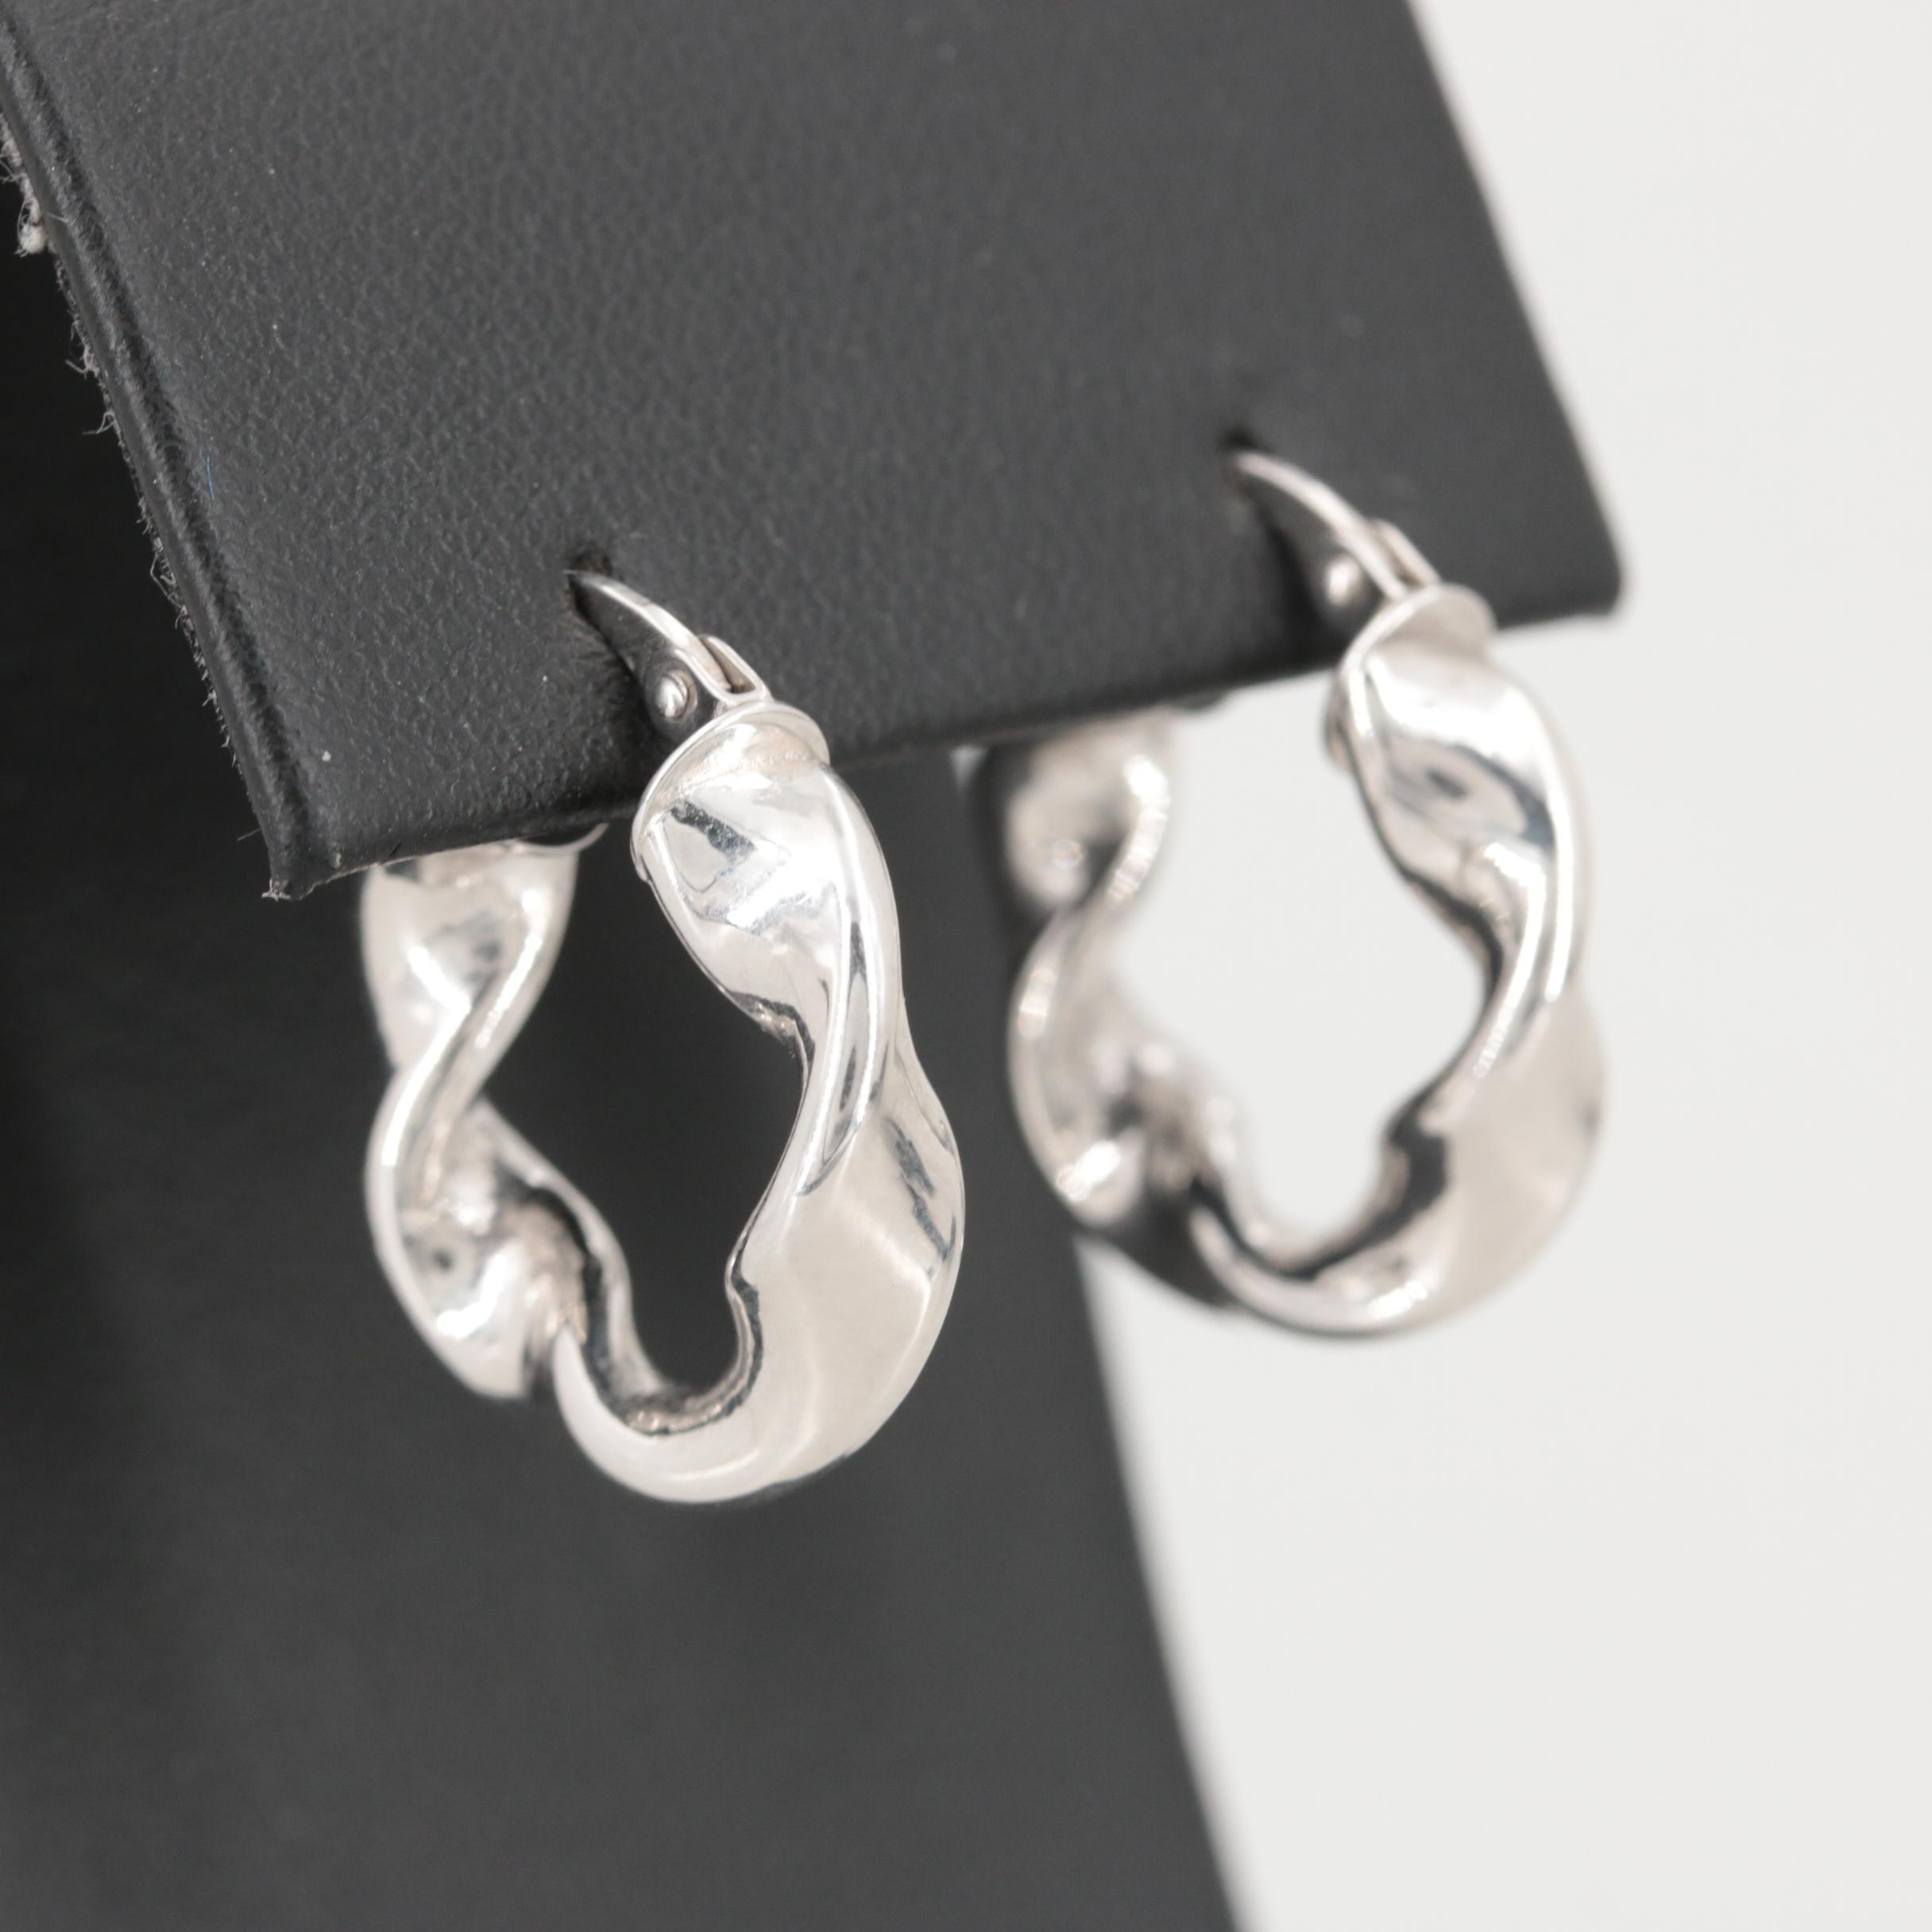 14K White Gold Twisted Hoop Earrings